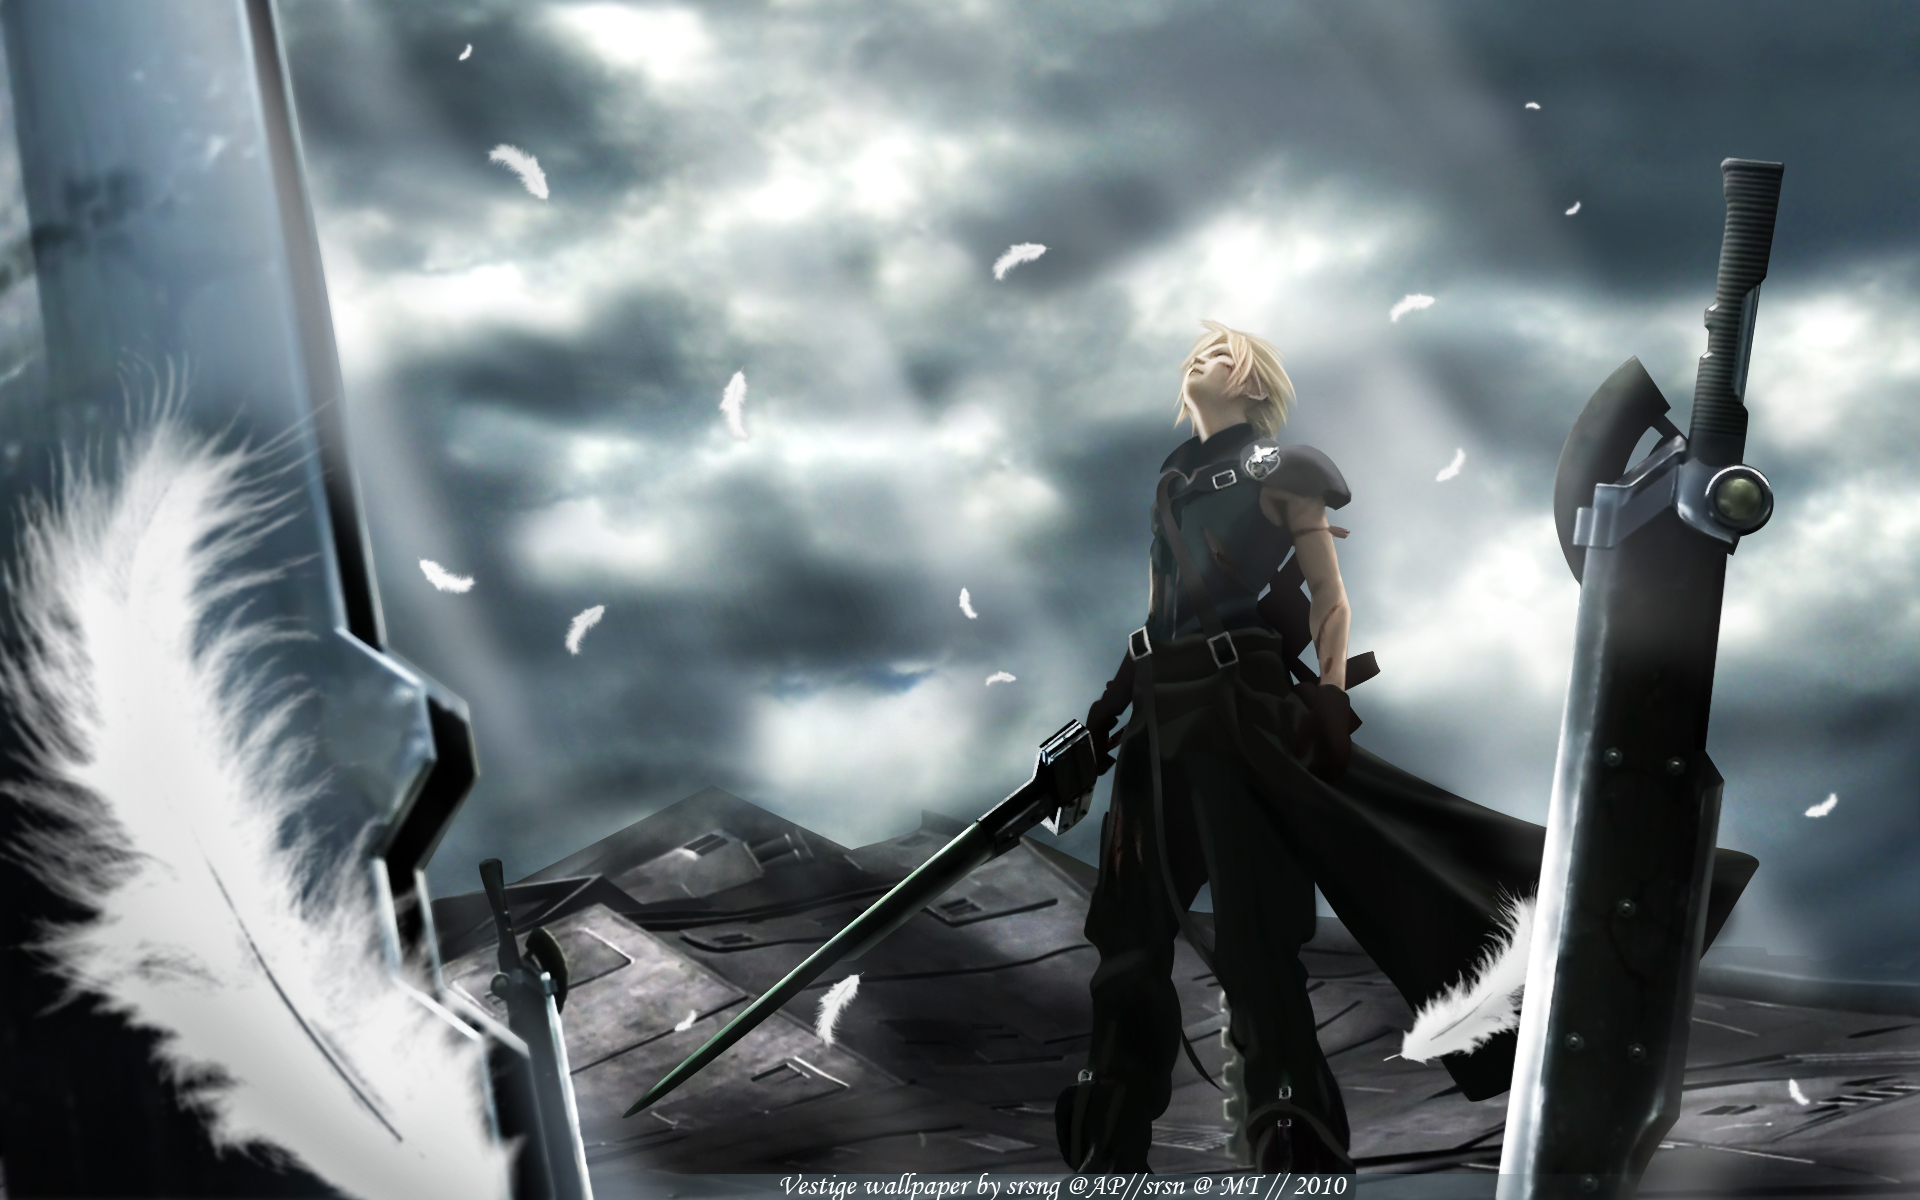 final fantasy wallpaper android windows is high definition wallpaper 1920x1200